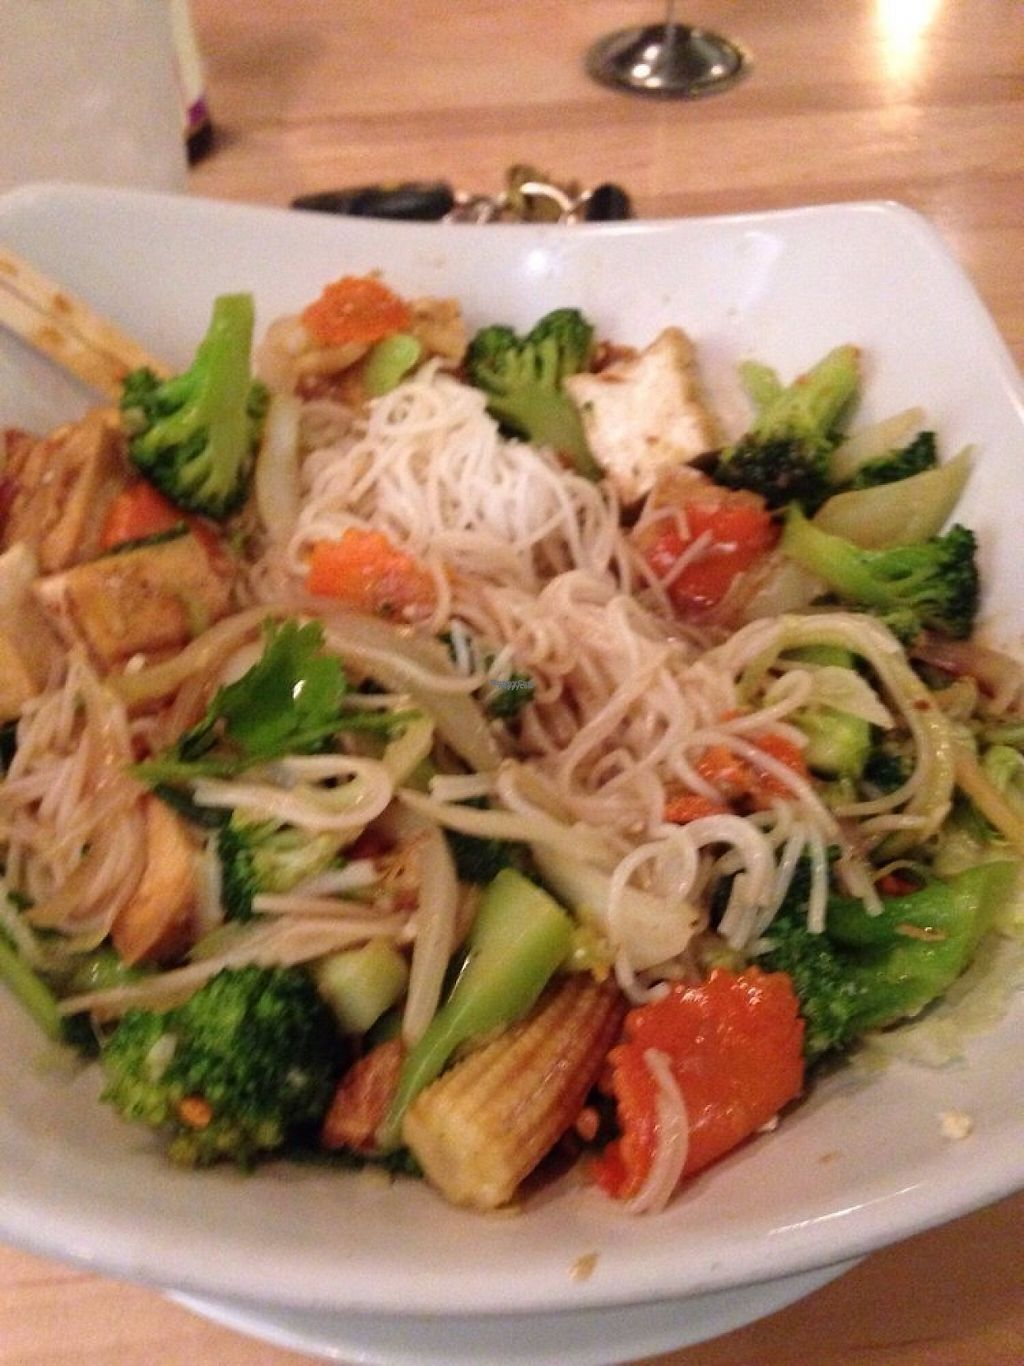 """Photo of Saigon Noodle House - 3rd Ave  by <a href=""""/members/profile/skat"""">skat</a> <br/>Tofu Stir Fry <br/> November 22, 2016  - <a href='/contact/abuse/image/78778/193283'>Report</a>"""